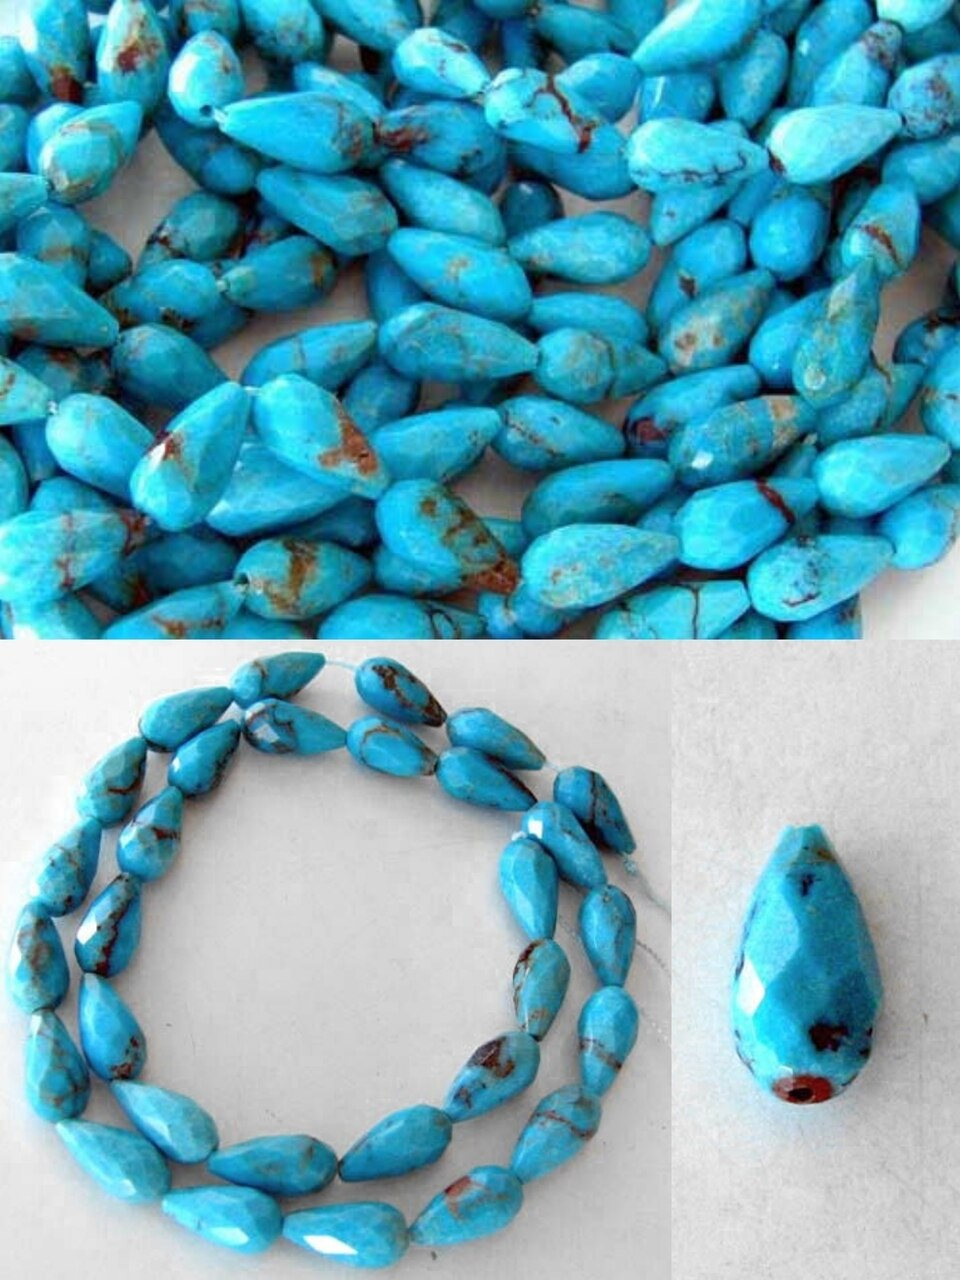 Natural Turquoise Faceted Teardrop Bead Strand 107404B - PremiumBead